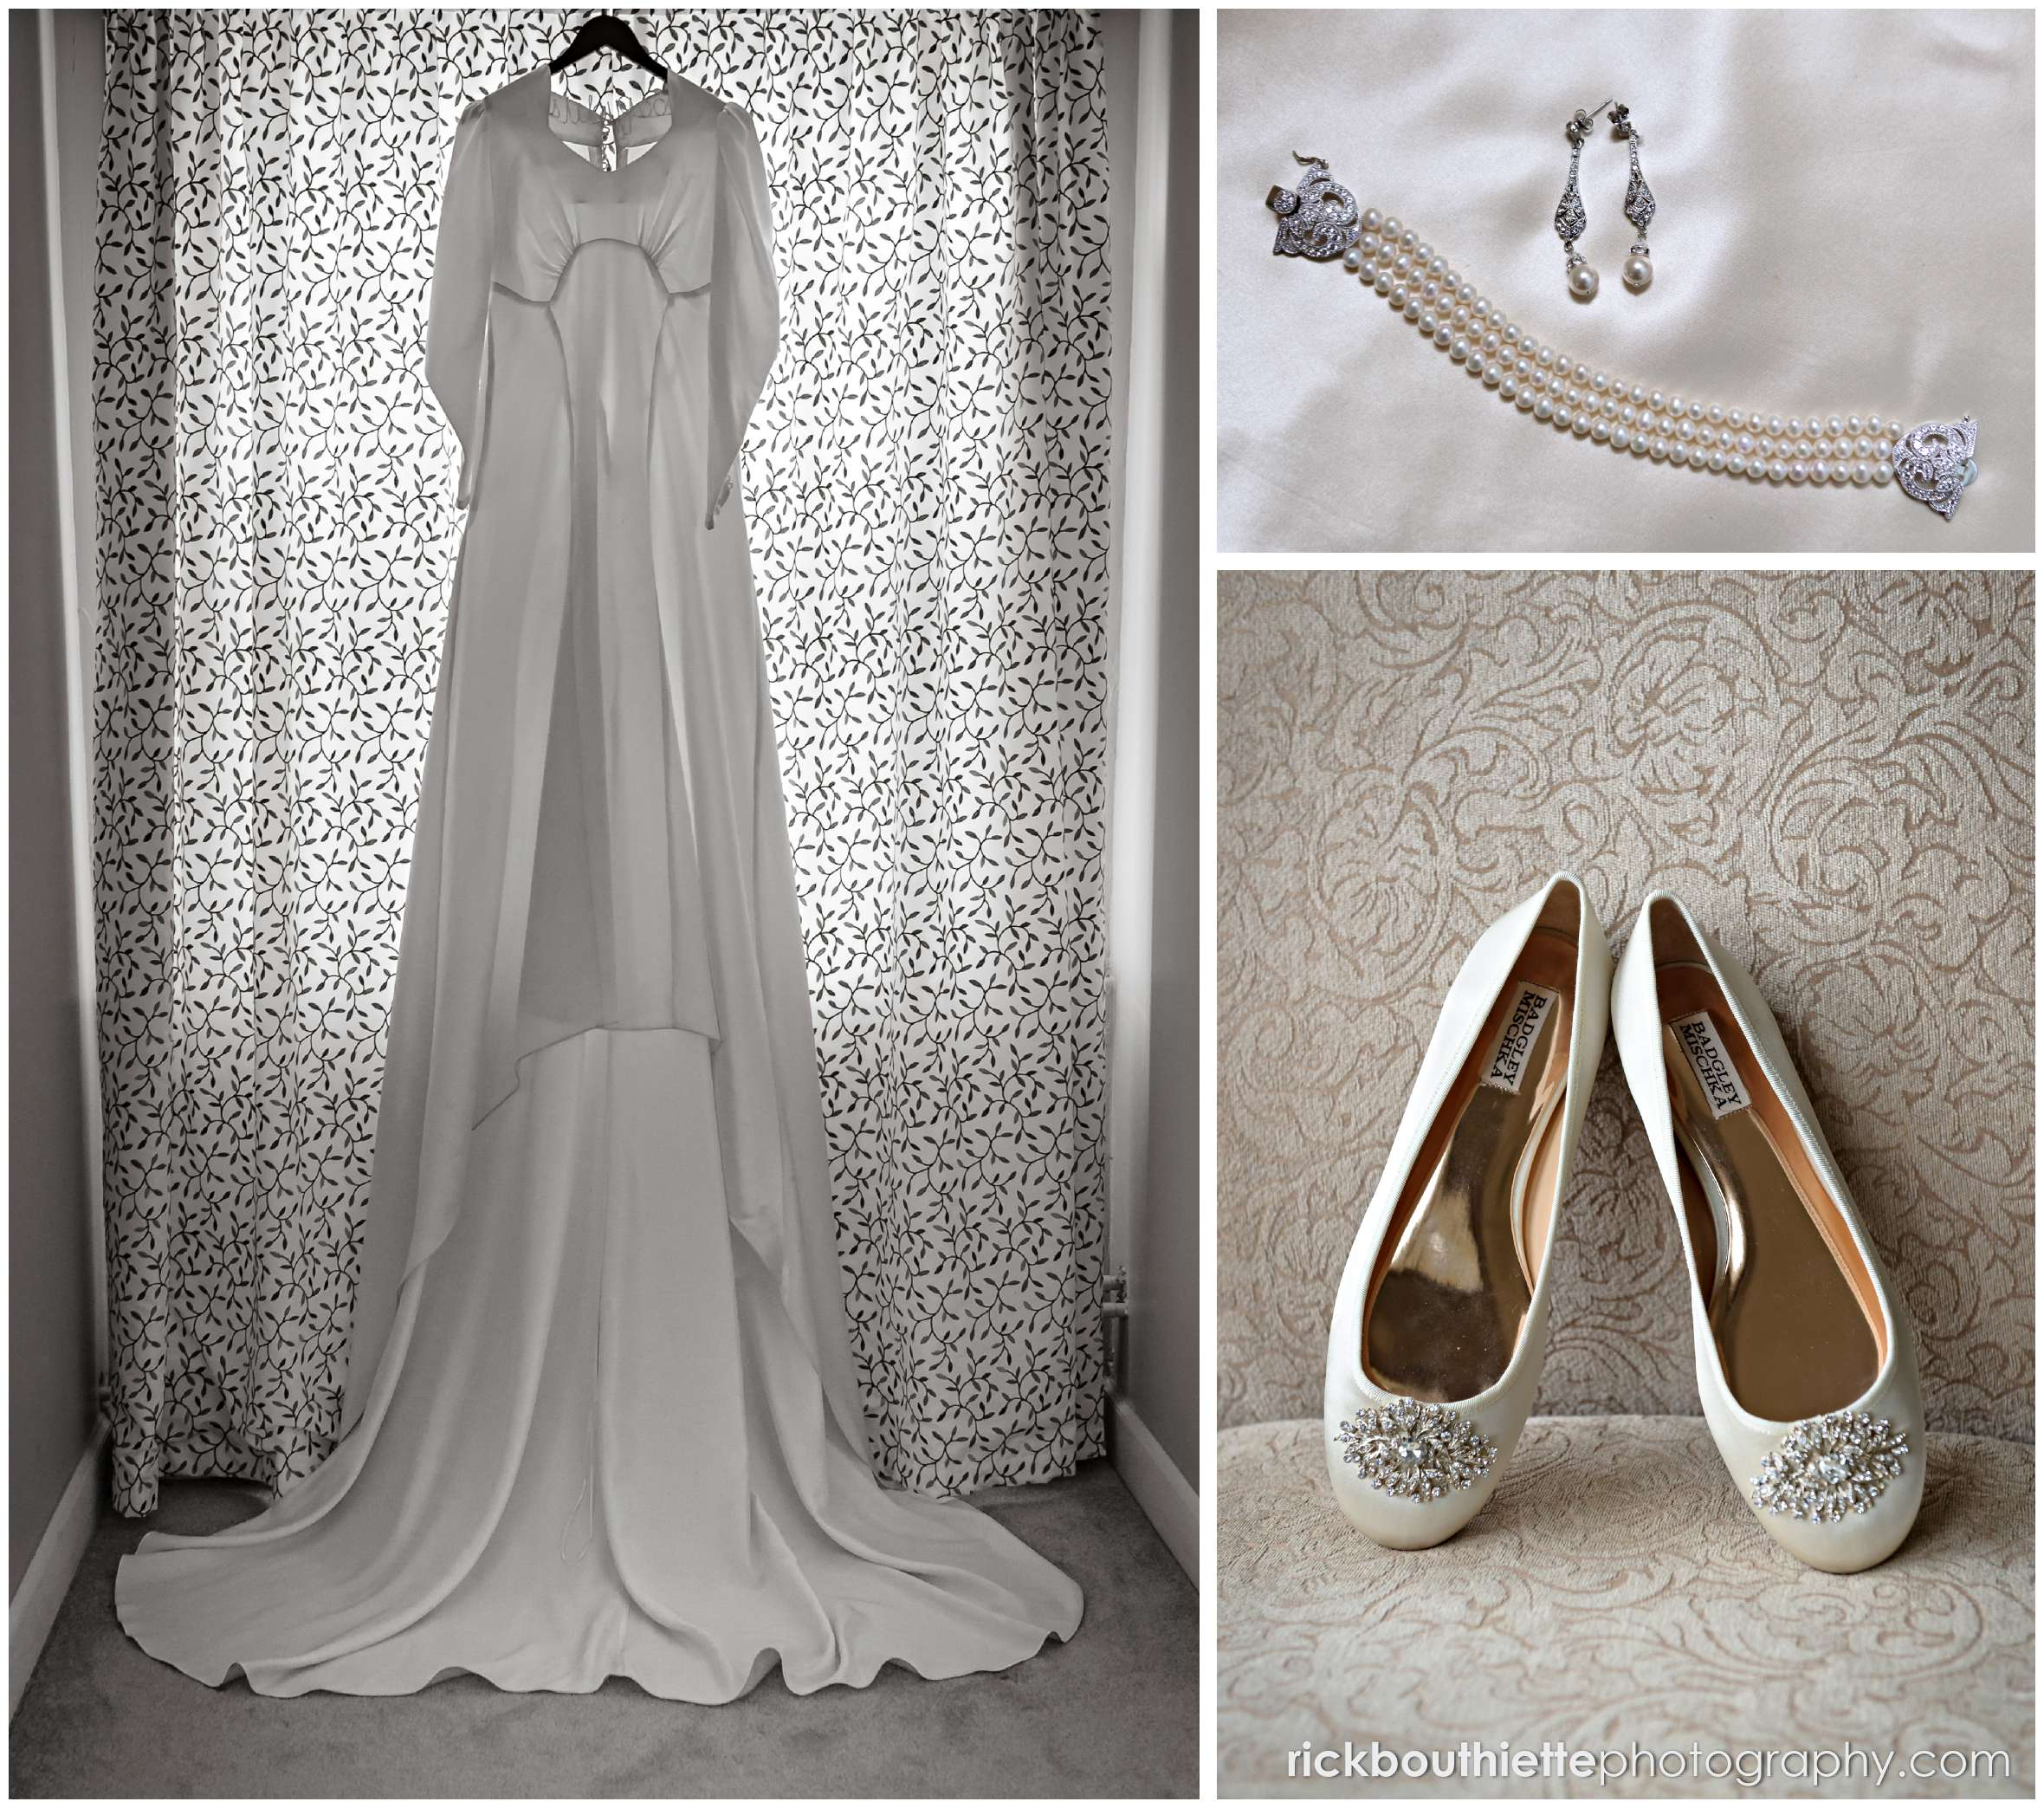 wedding dress, shoes and jewlery details